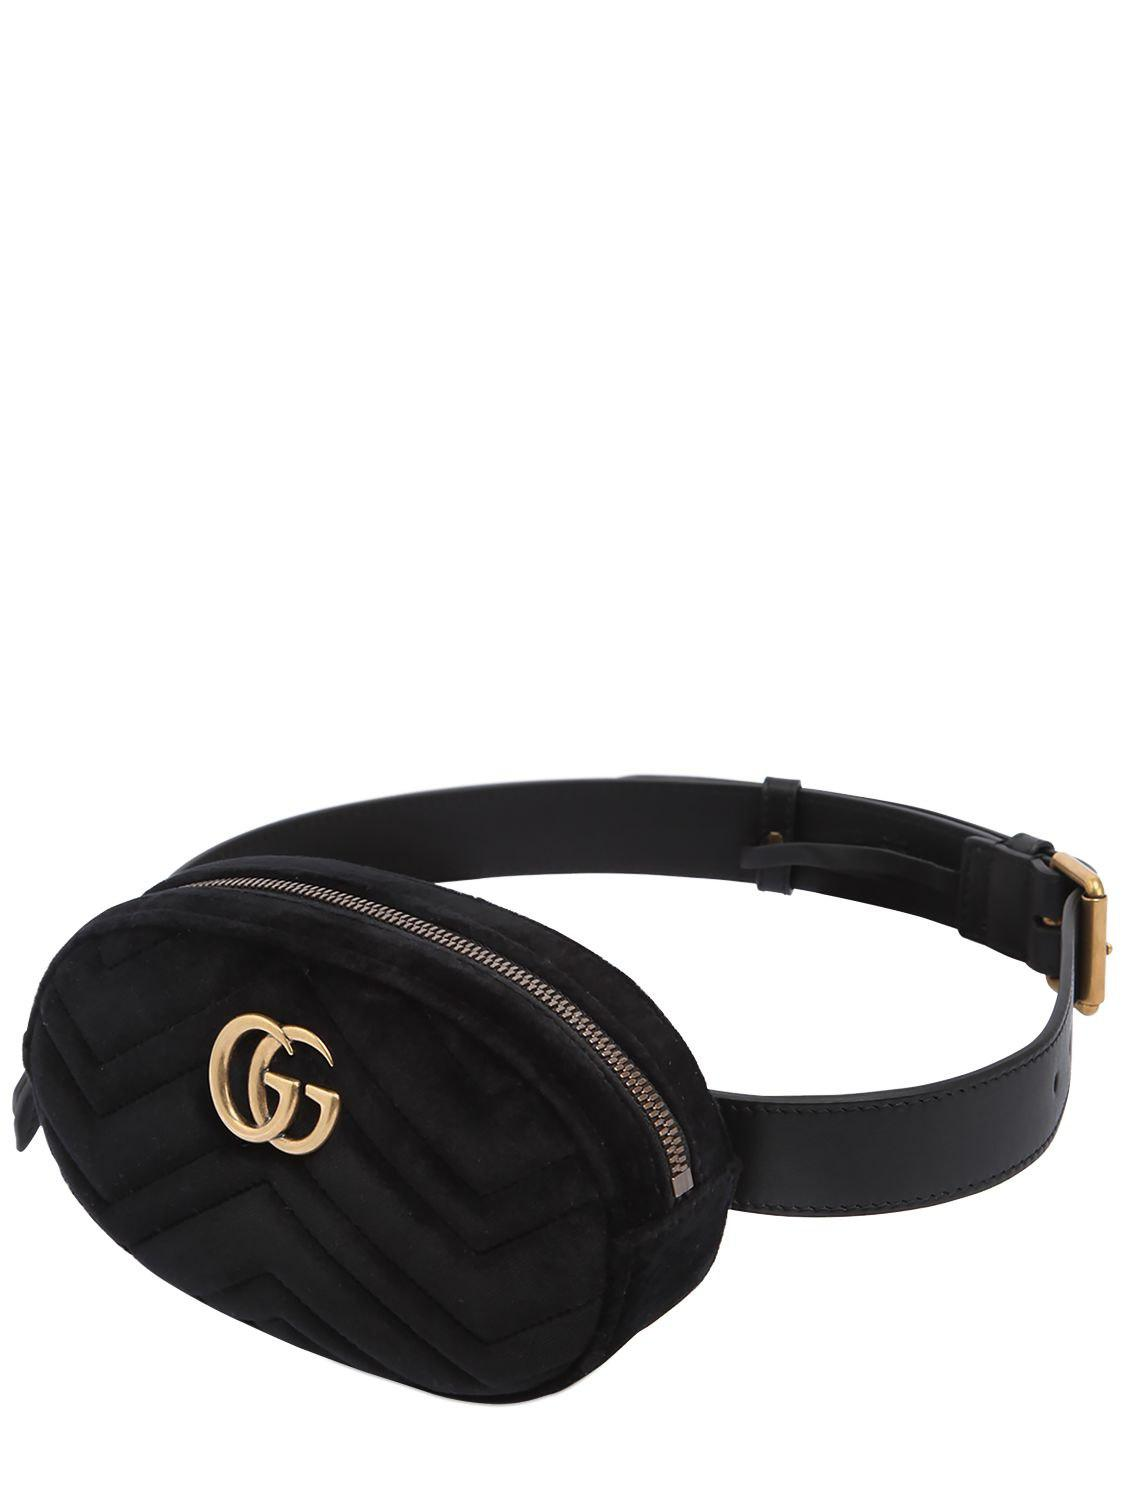 Gucci - Black Sac Banane